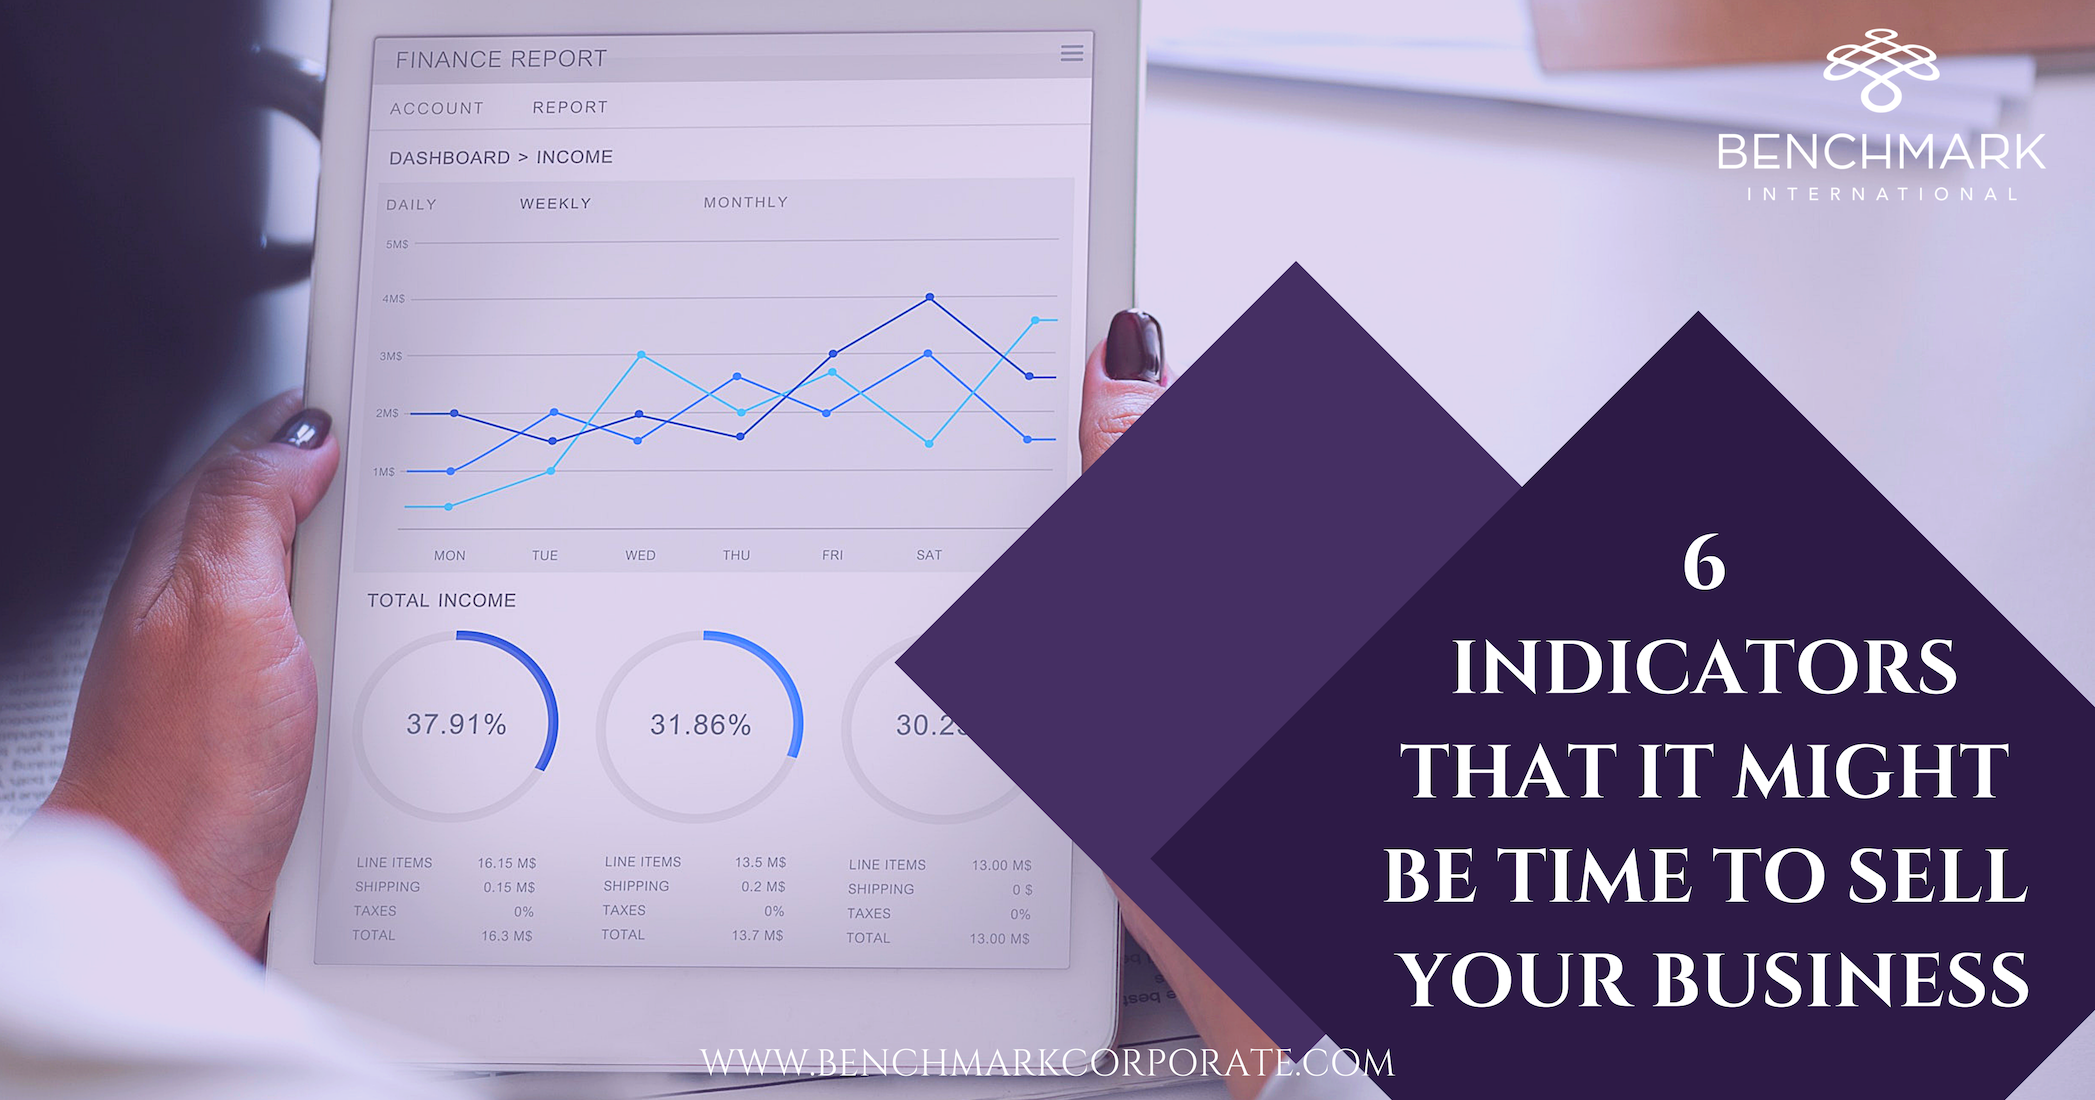 6 Indicators that it Might be Time to Sell Your Business